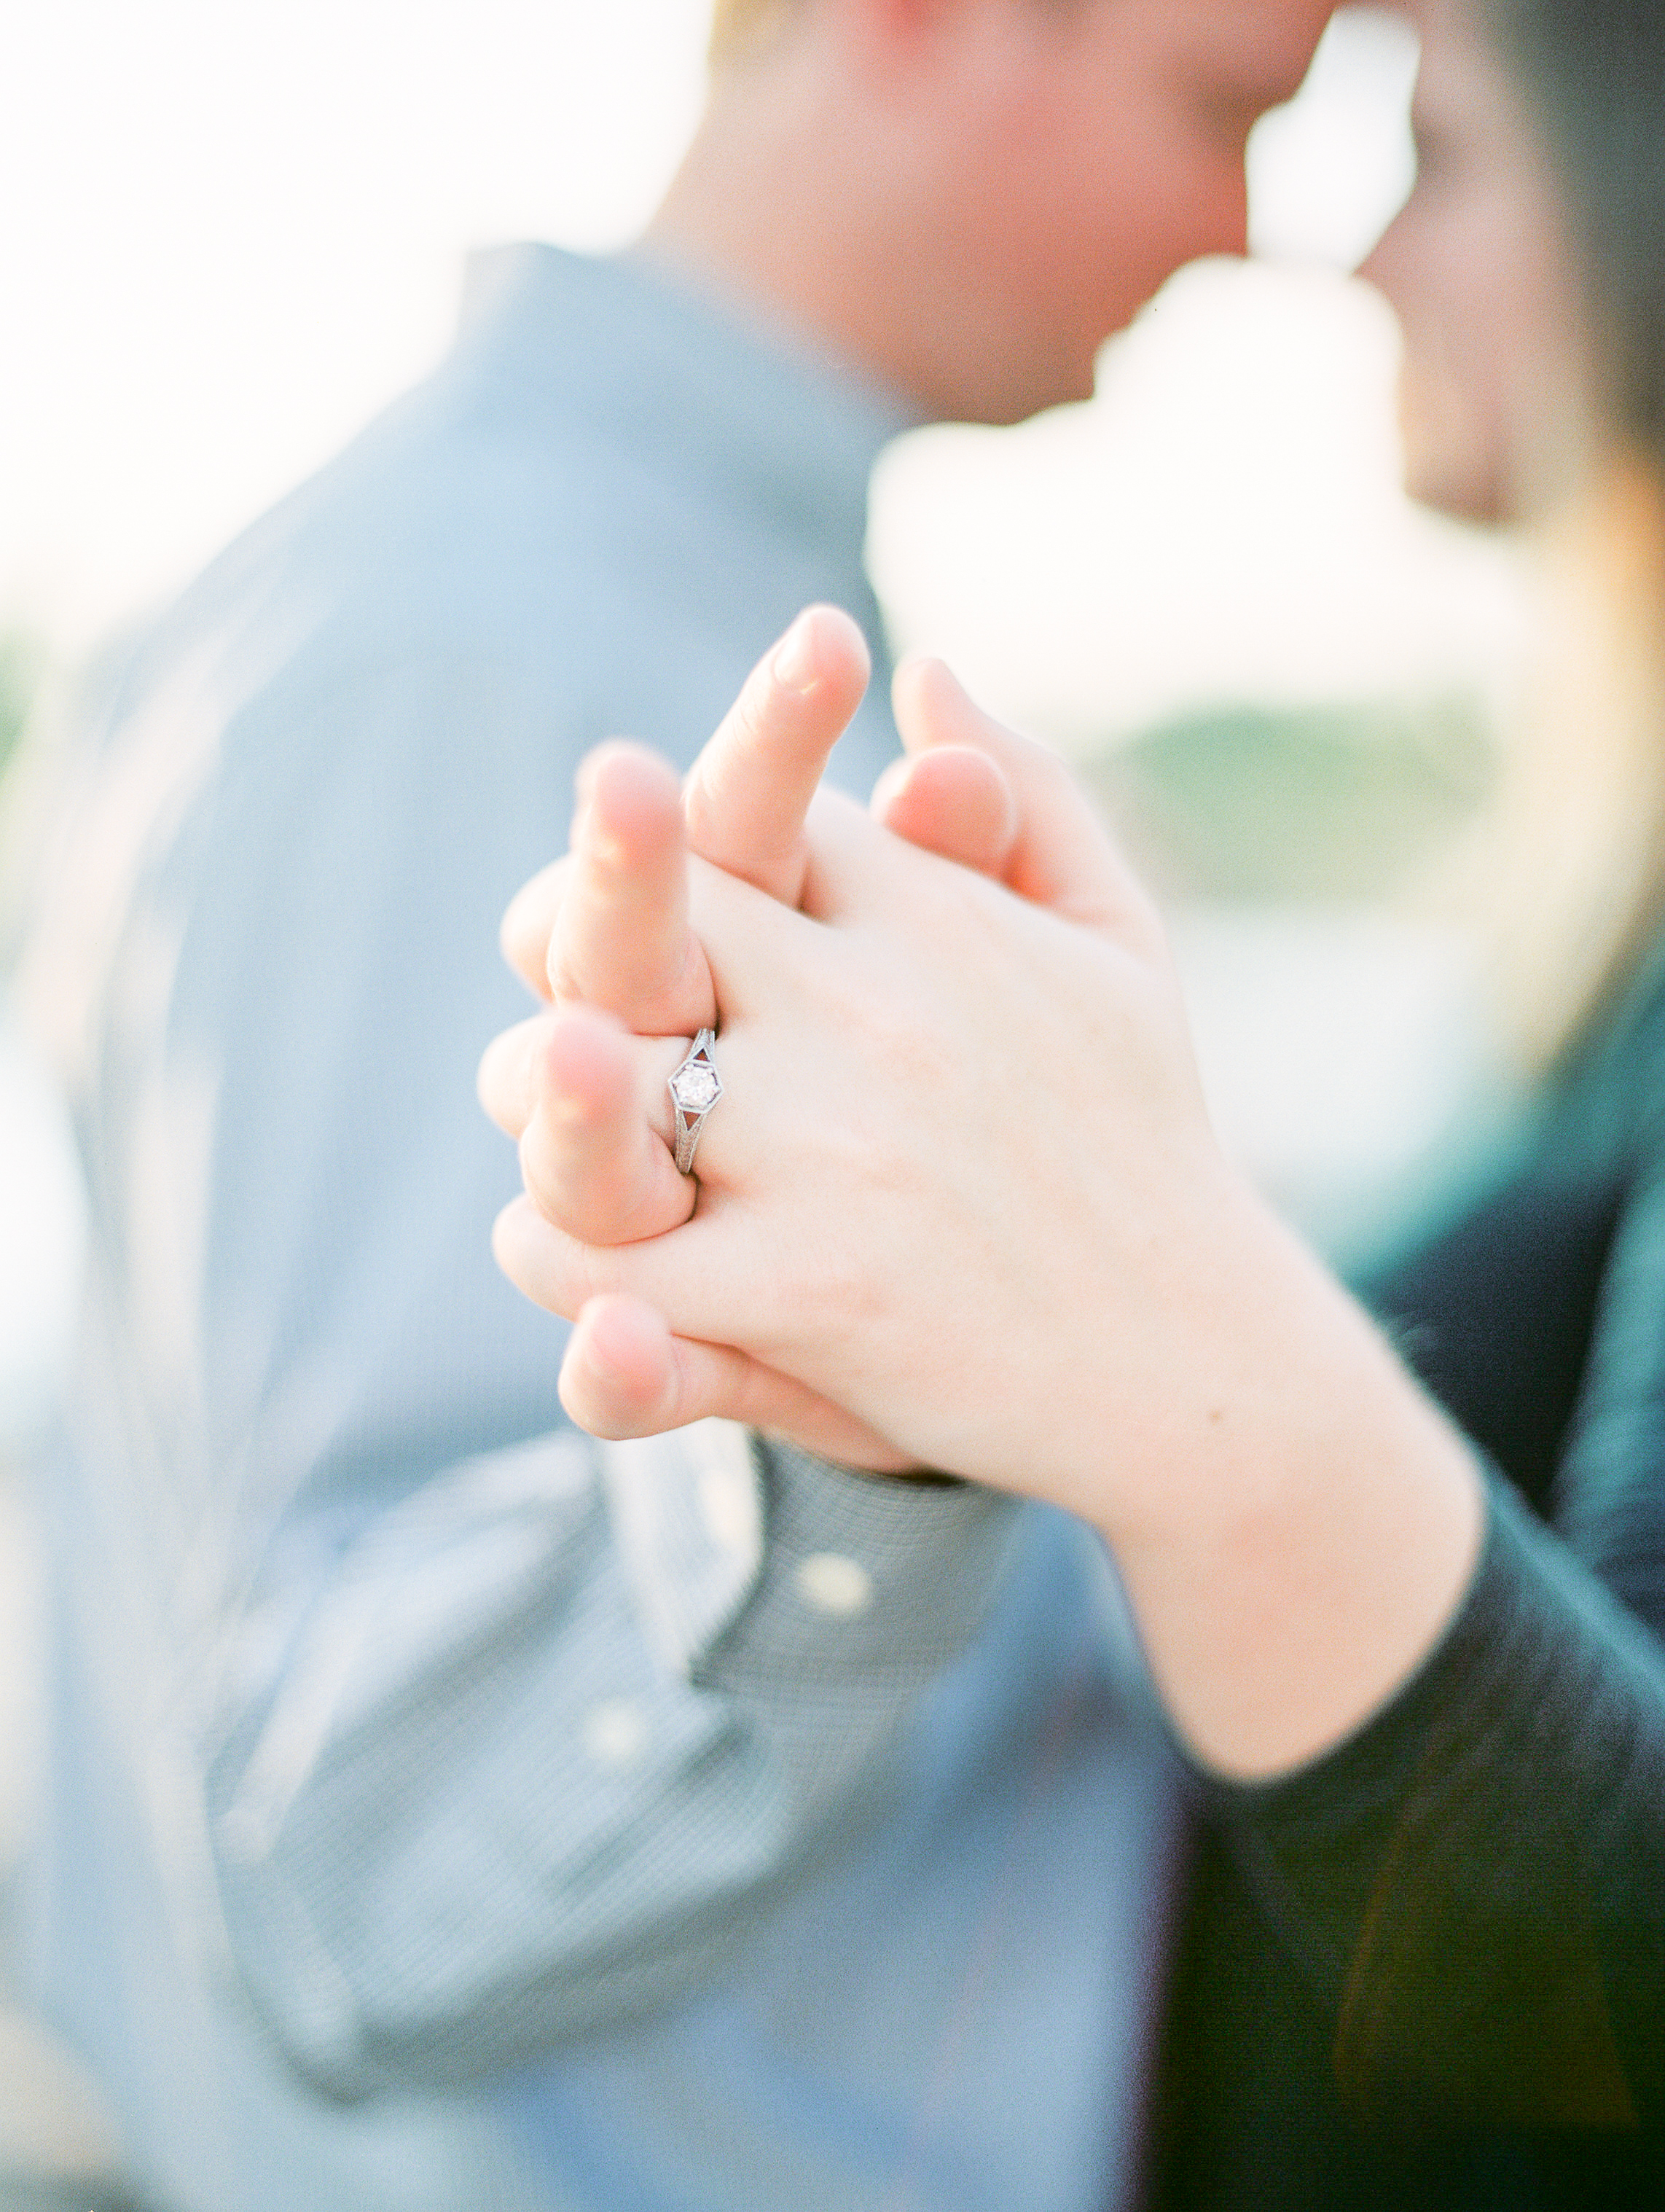 Becca_Adam_Riverwalk_Engagement_Columbus_Georgia_Fallen_Photography-51.JPG